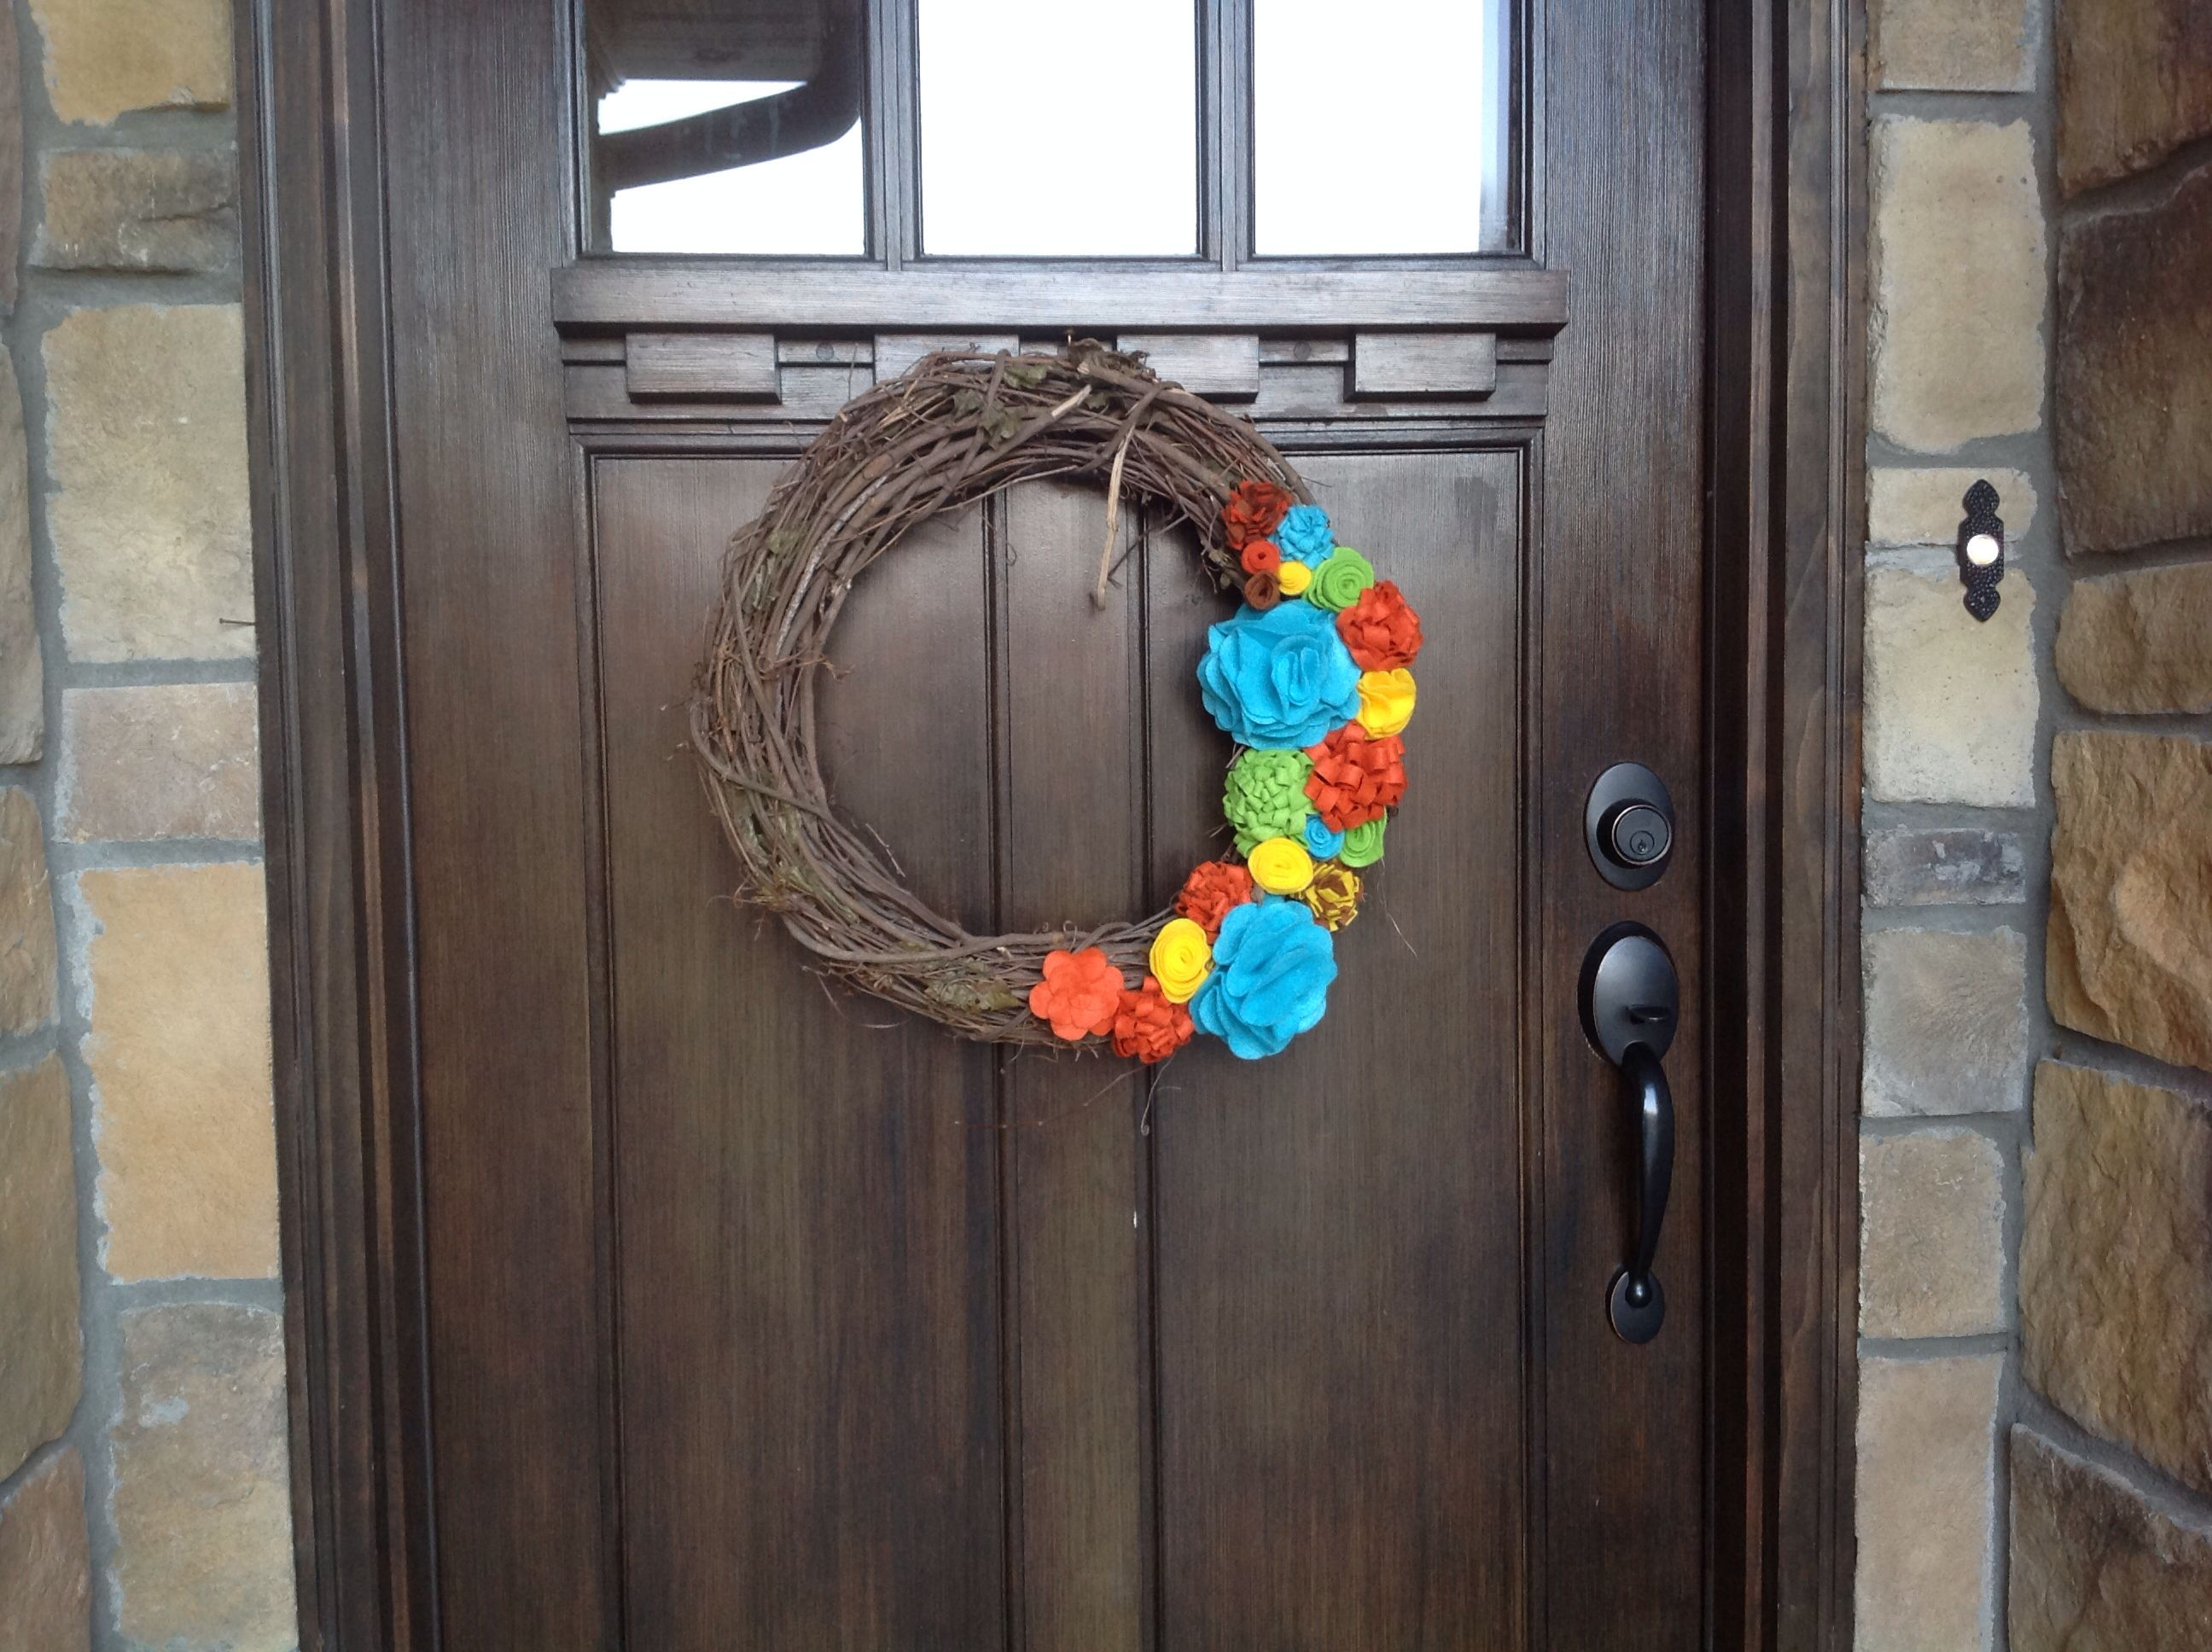 My daughter and I love all things felt and so decided to incorporate it into our door wreath this fall.